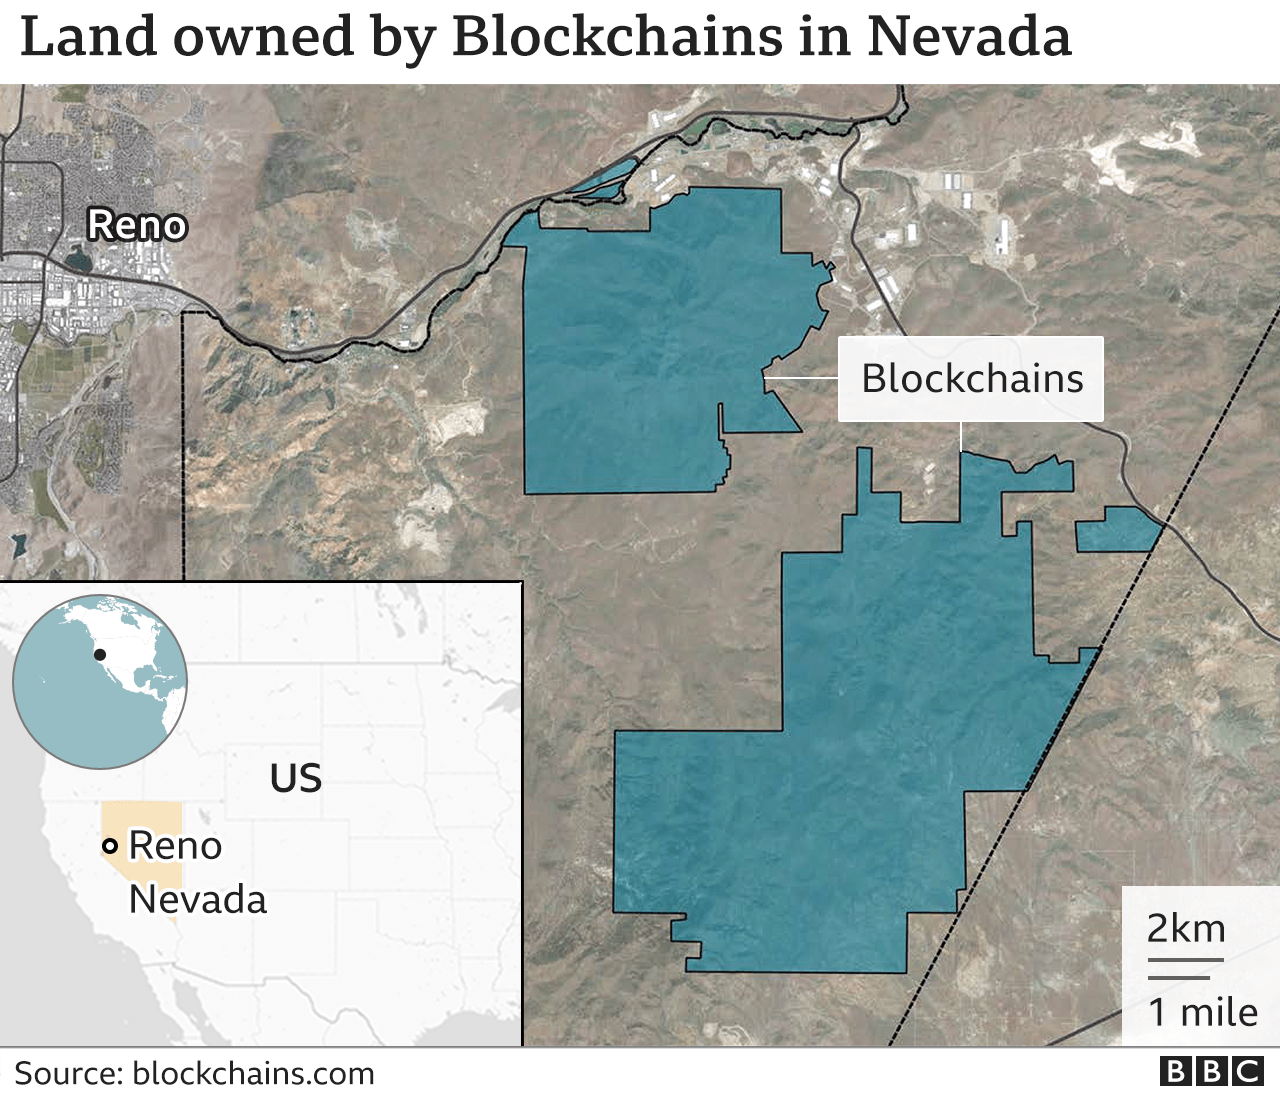 A graphic showing the land owned by Blockchains in Nevada